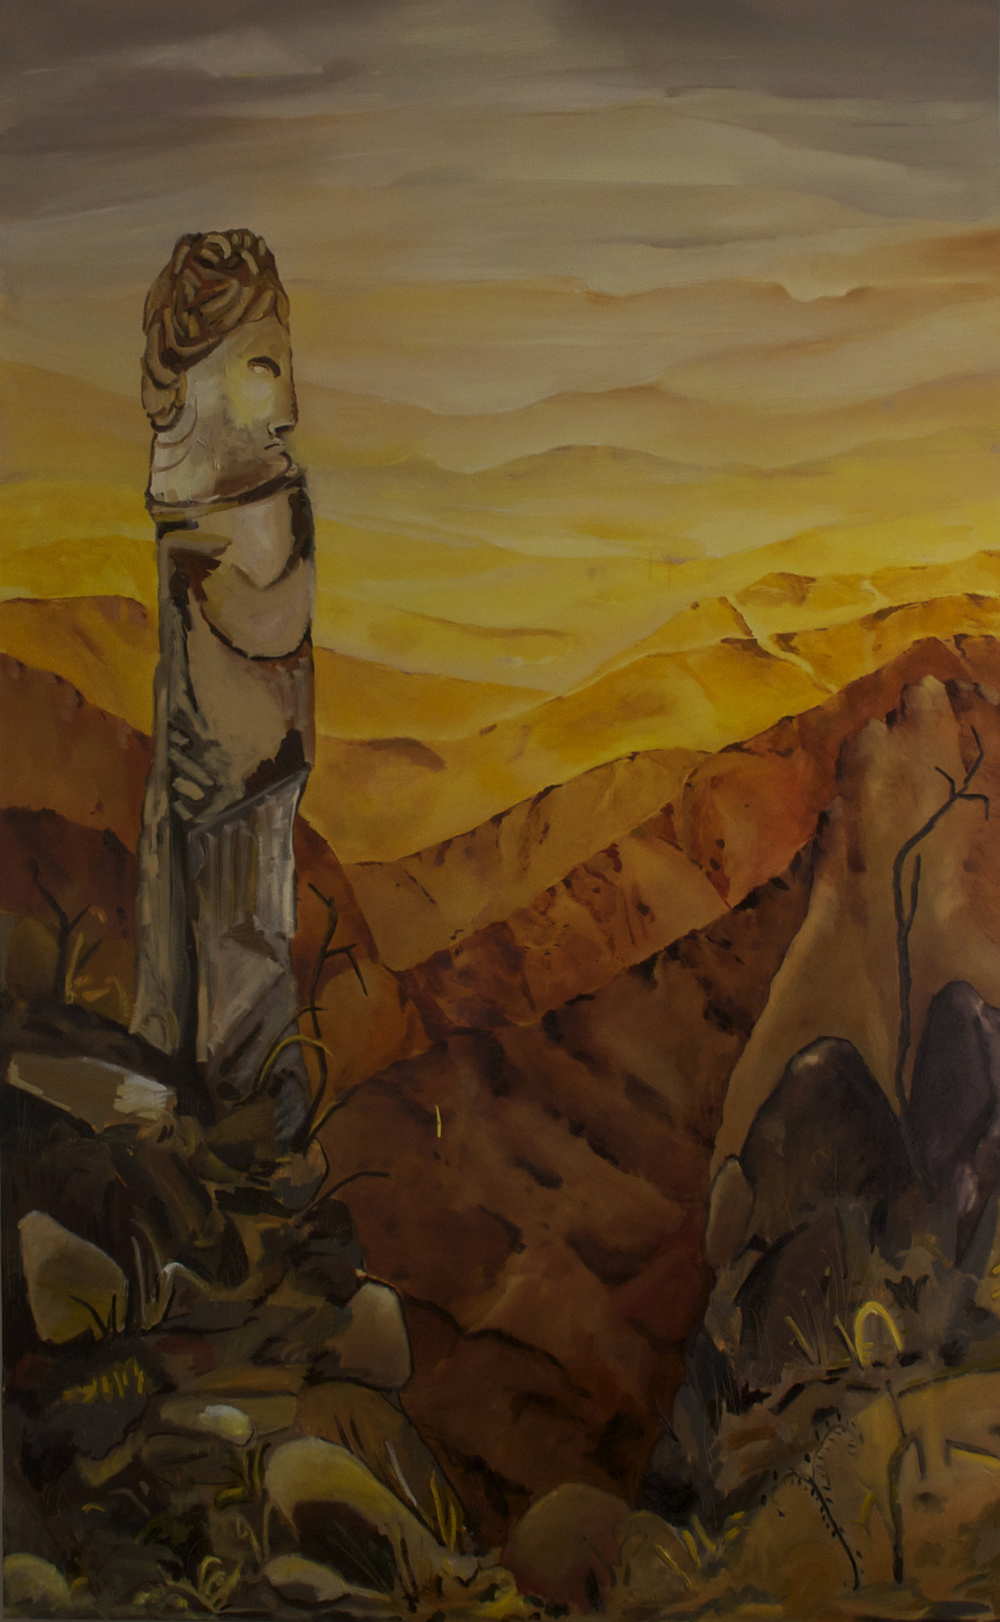 Key's View, oil on canvas, 60x95 inches.